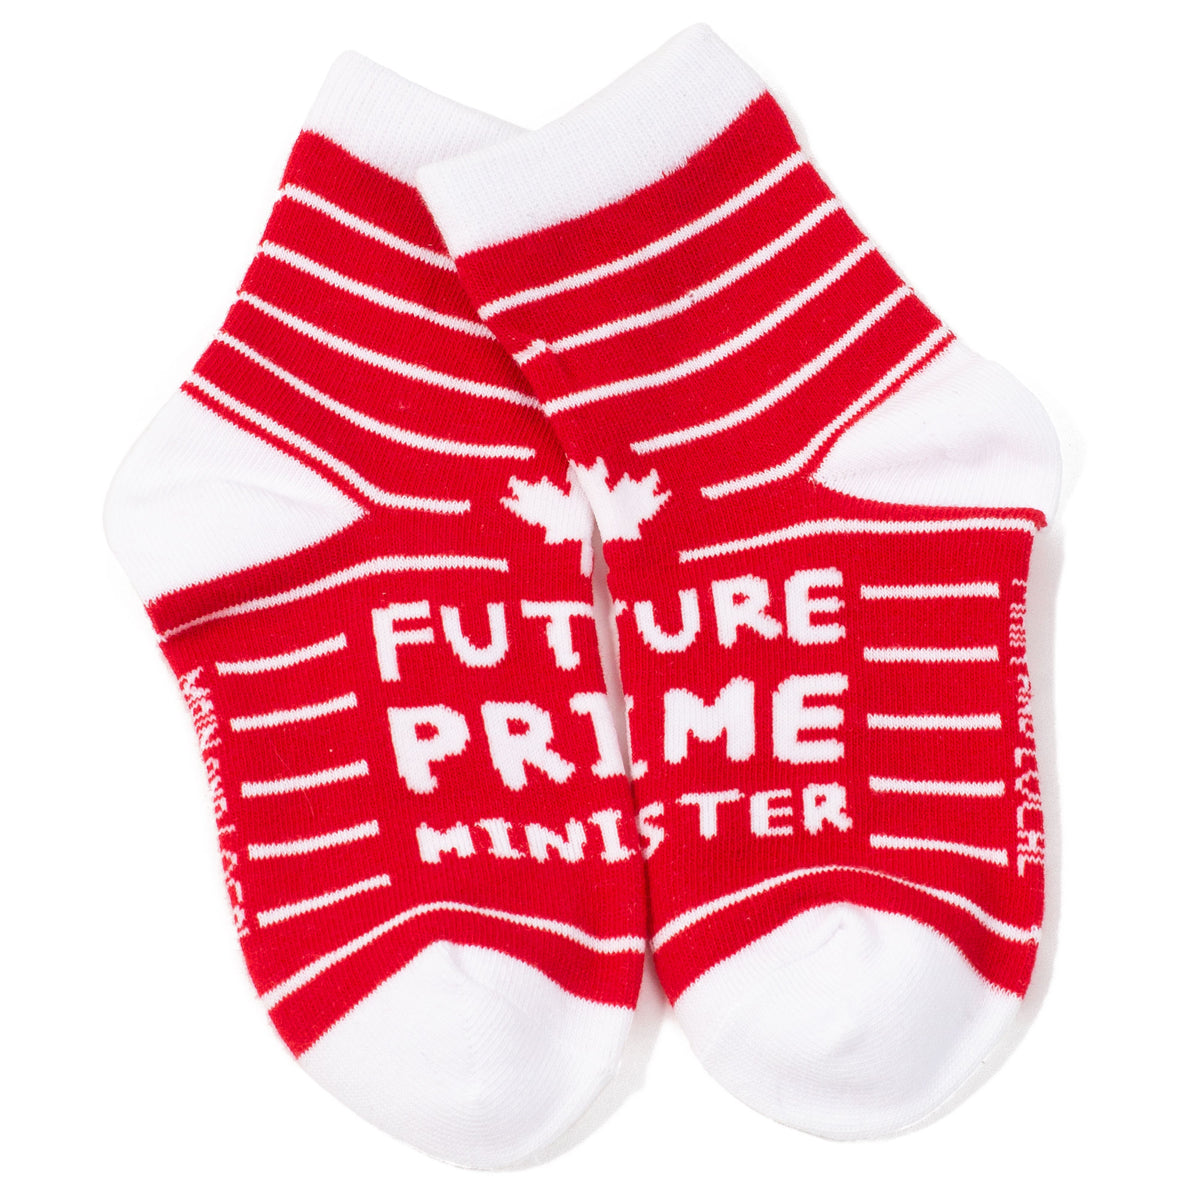 Childrens Future Prime Minister Socks - Red